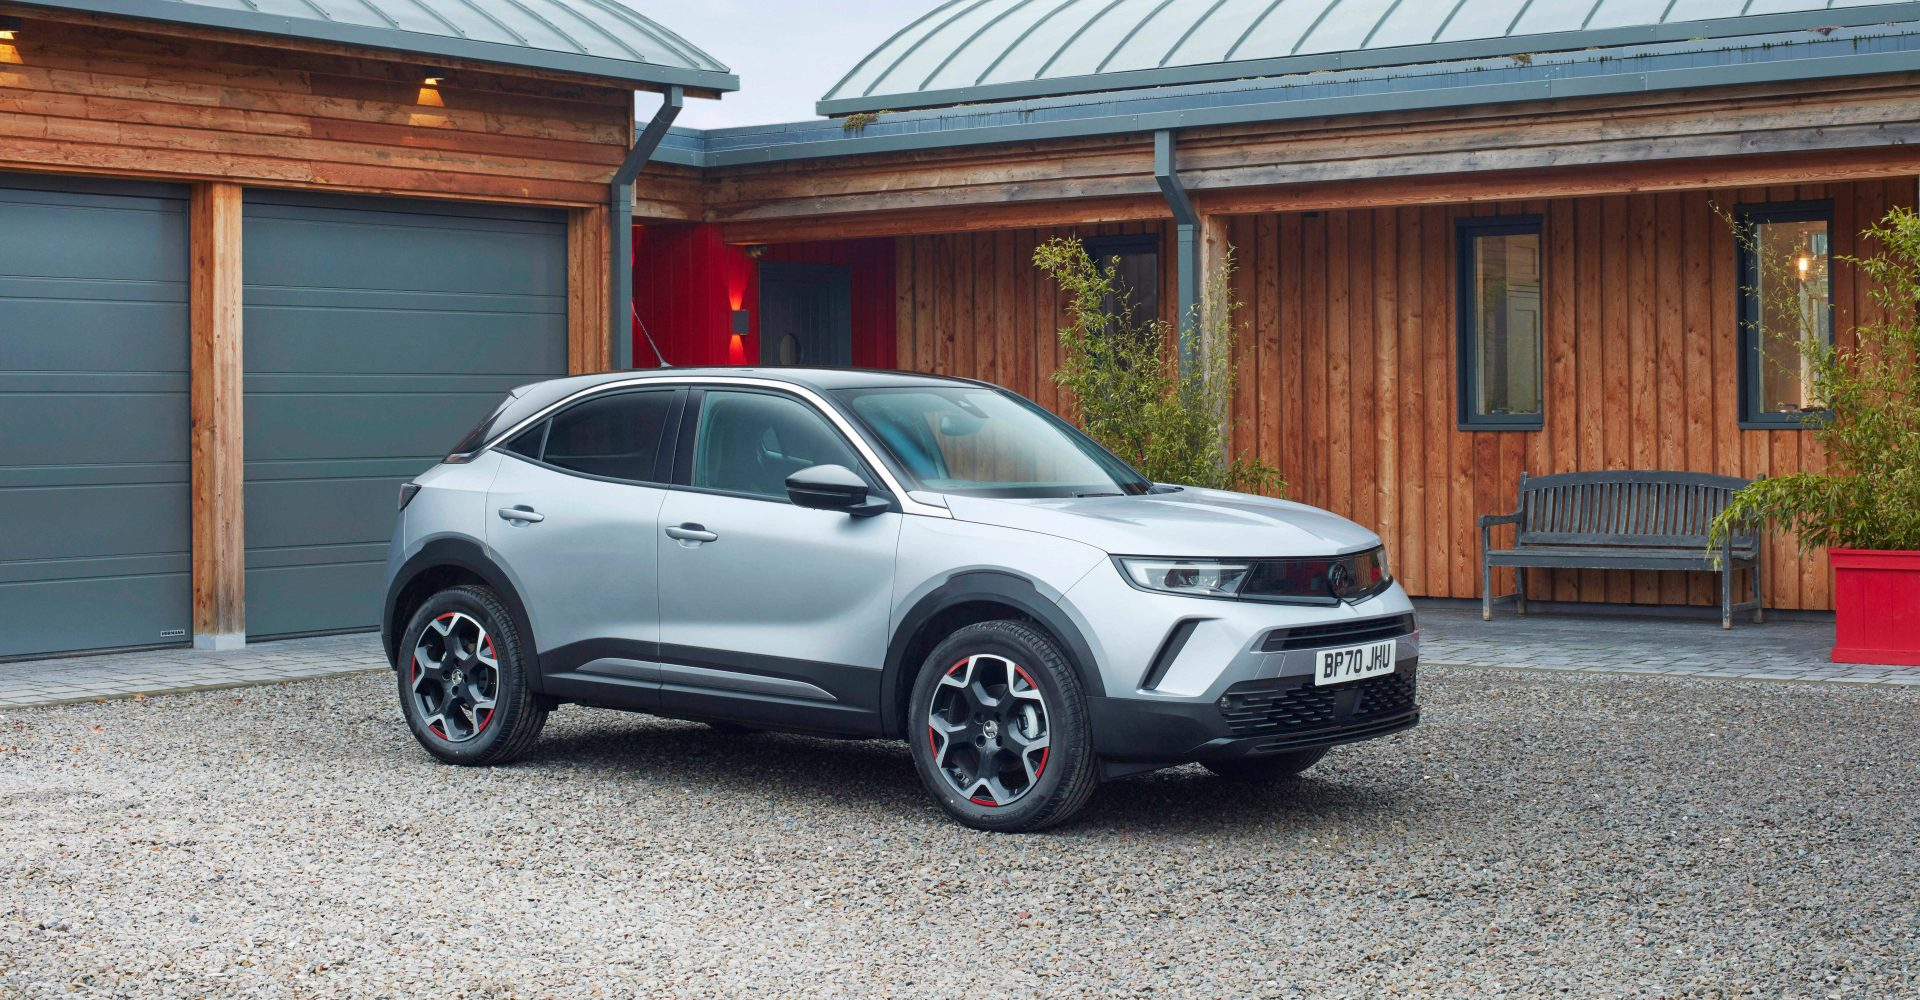 First Drive: The Vauxhall Mokka has been reinvented as a striking small SUV